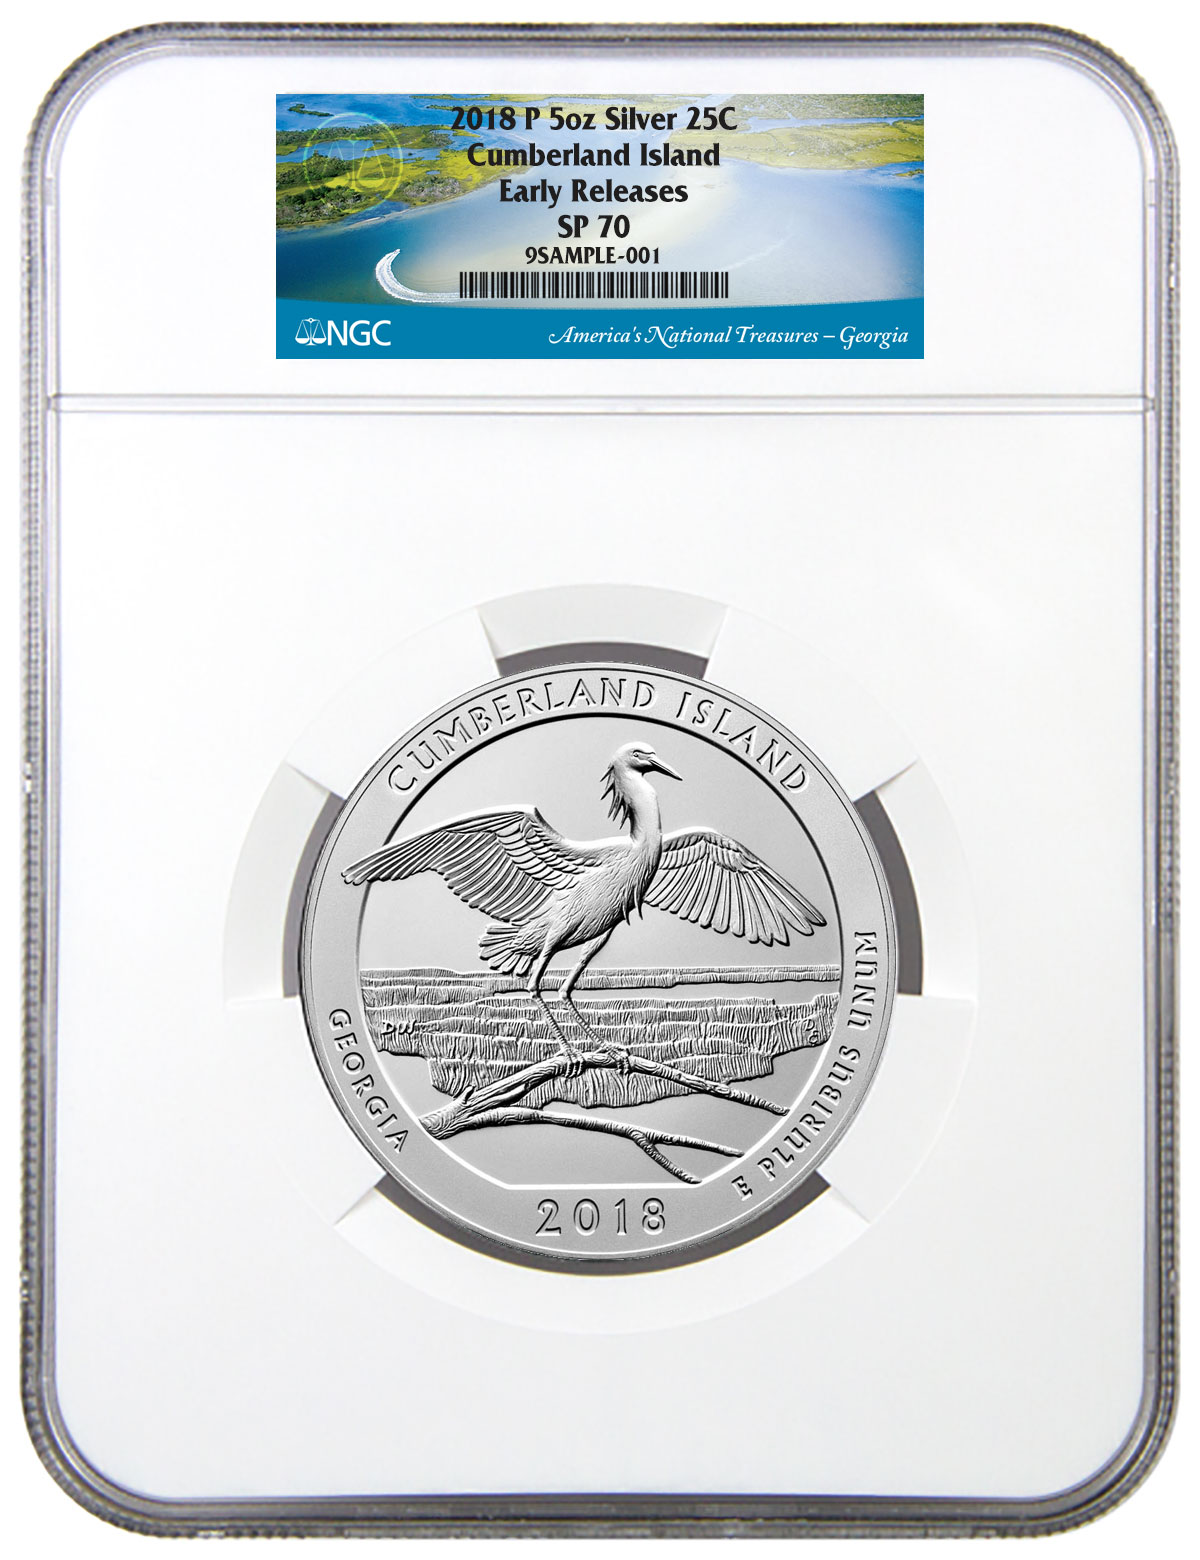 First Day Of Issue 2018 P Cumberland Island 5oz Silver Coin NGC SP70